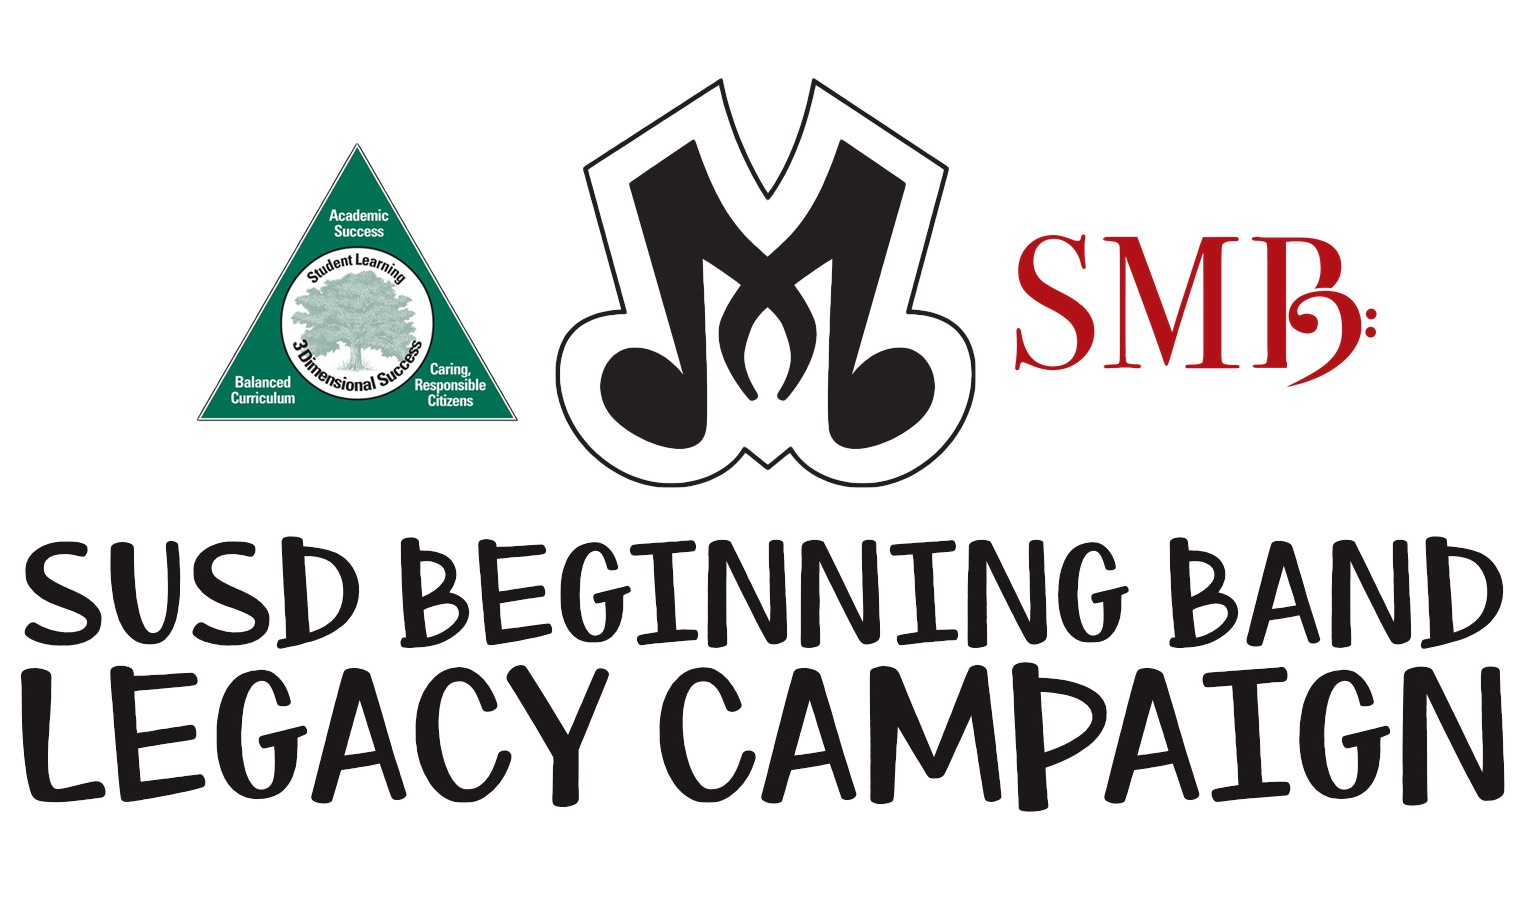 SUSD Beginning Band Legacy Campaign